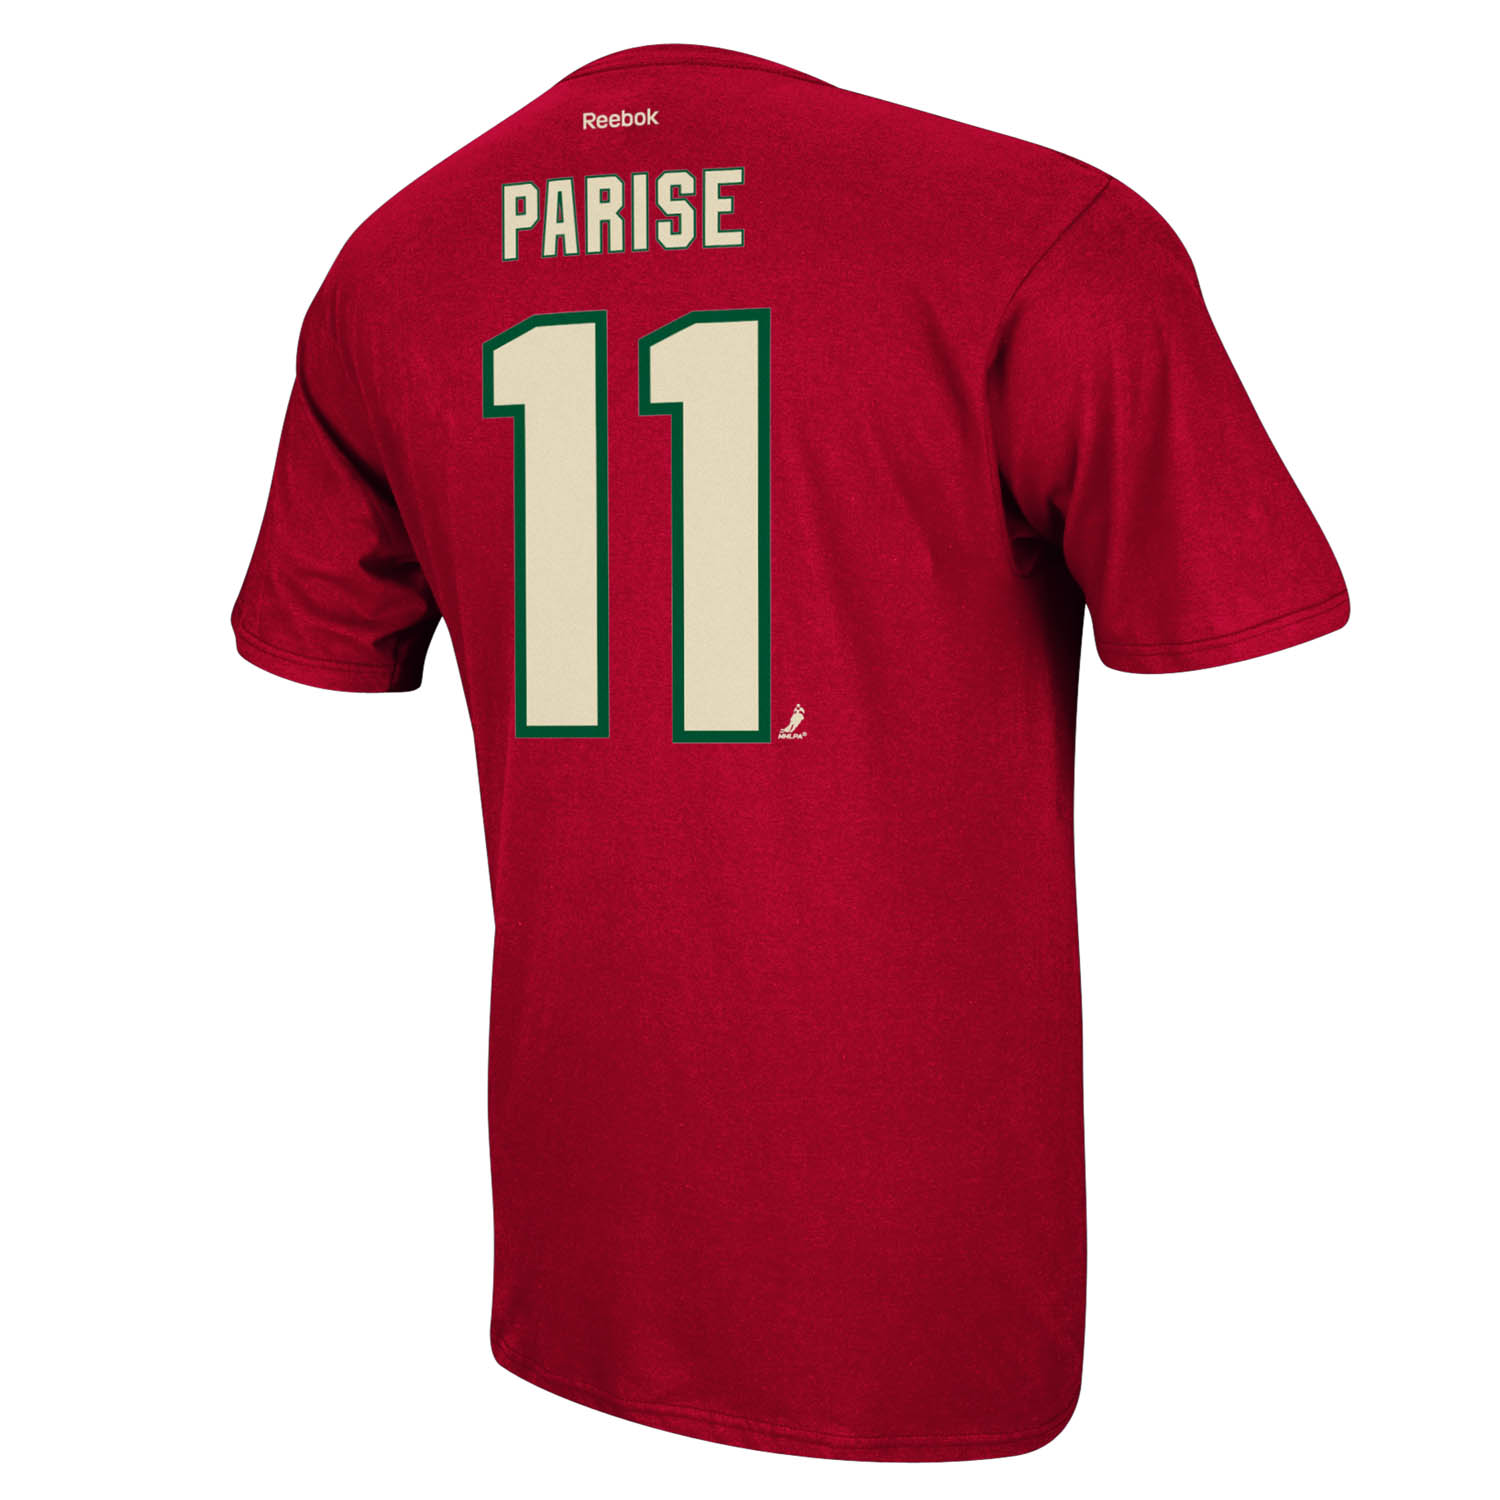 Minnesota Wild Zach Parise Reebok NHL Player T Shirt Men Red